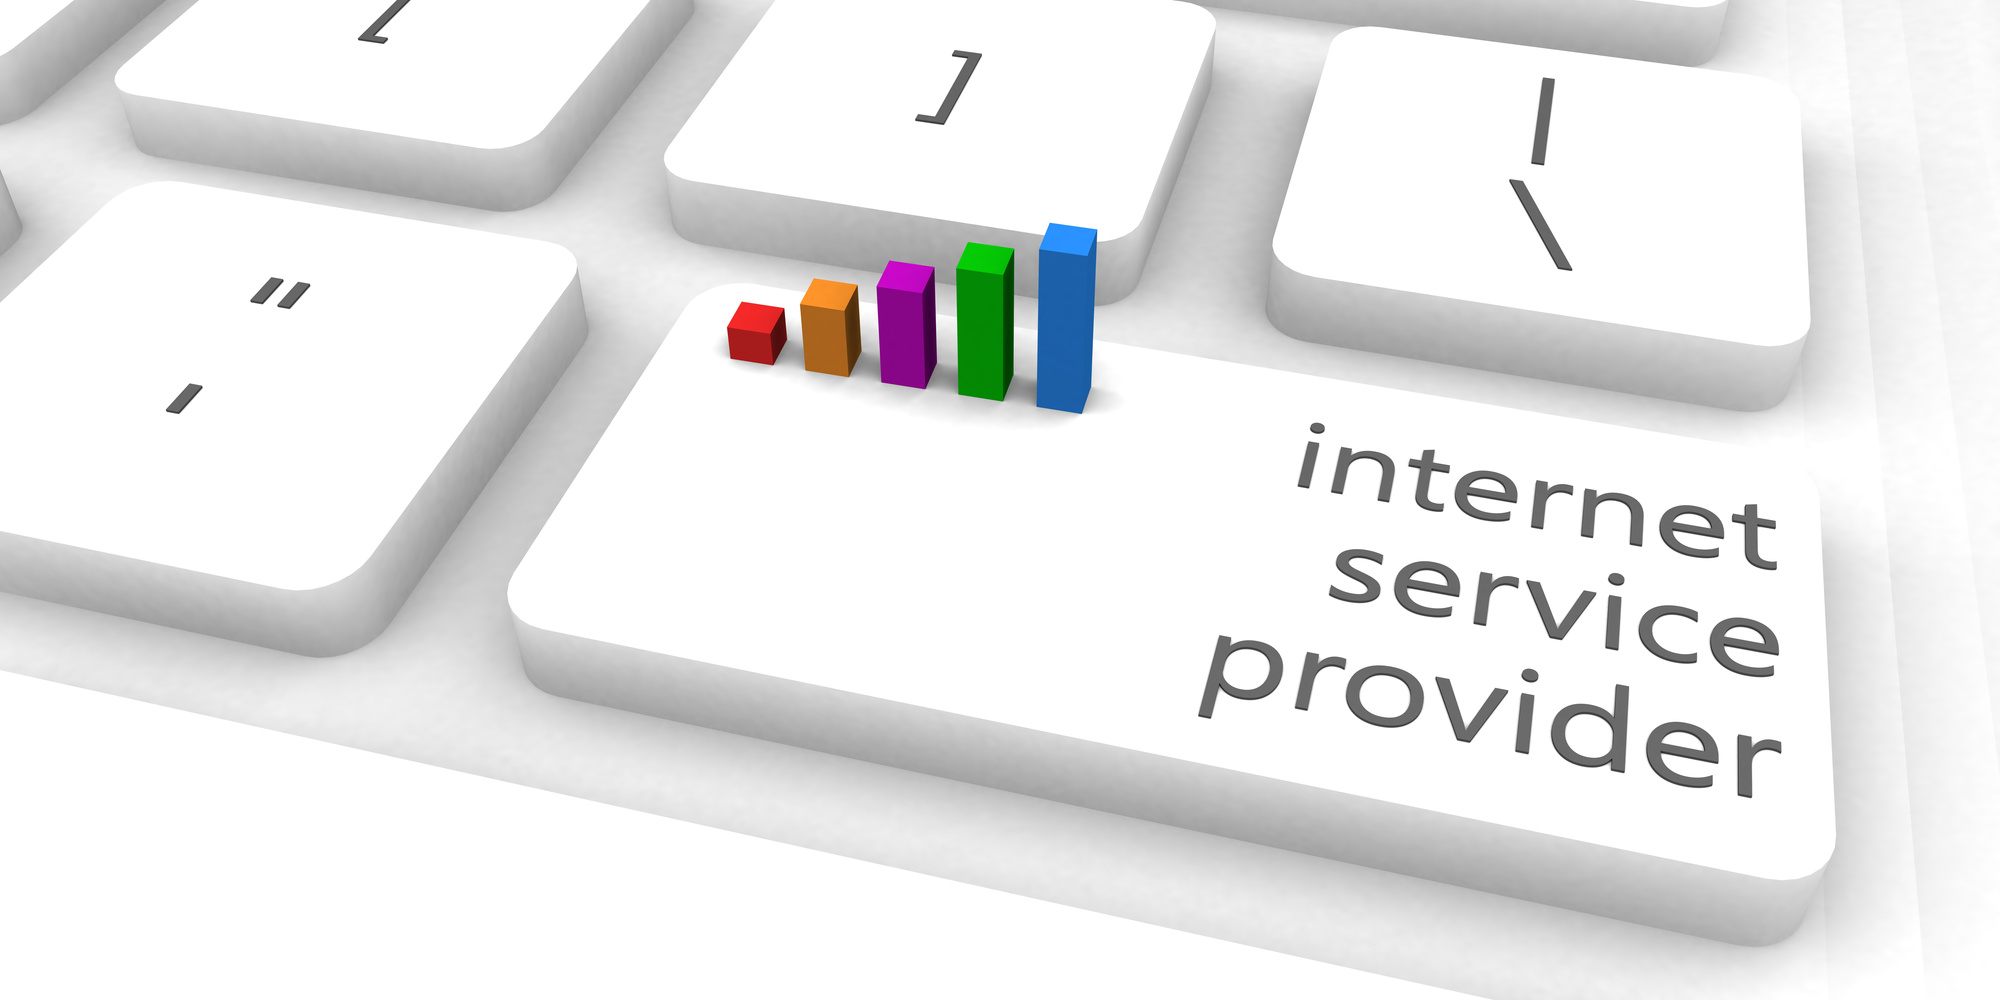 The 8 Most Important Things to Consider When Comparing Internet Service Providers